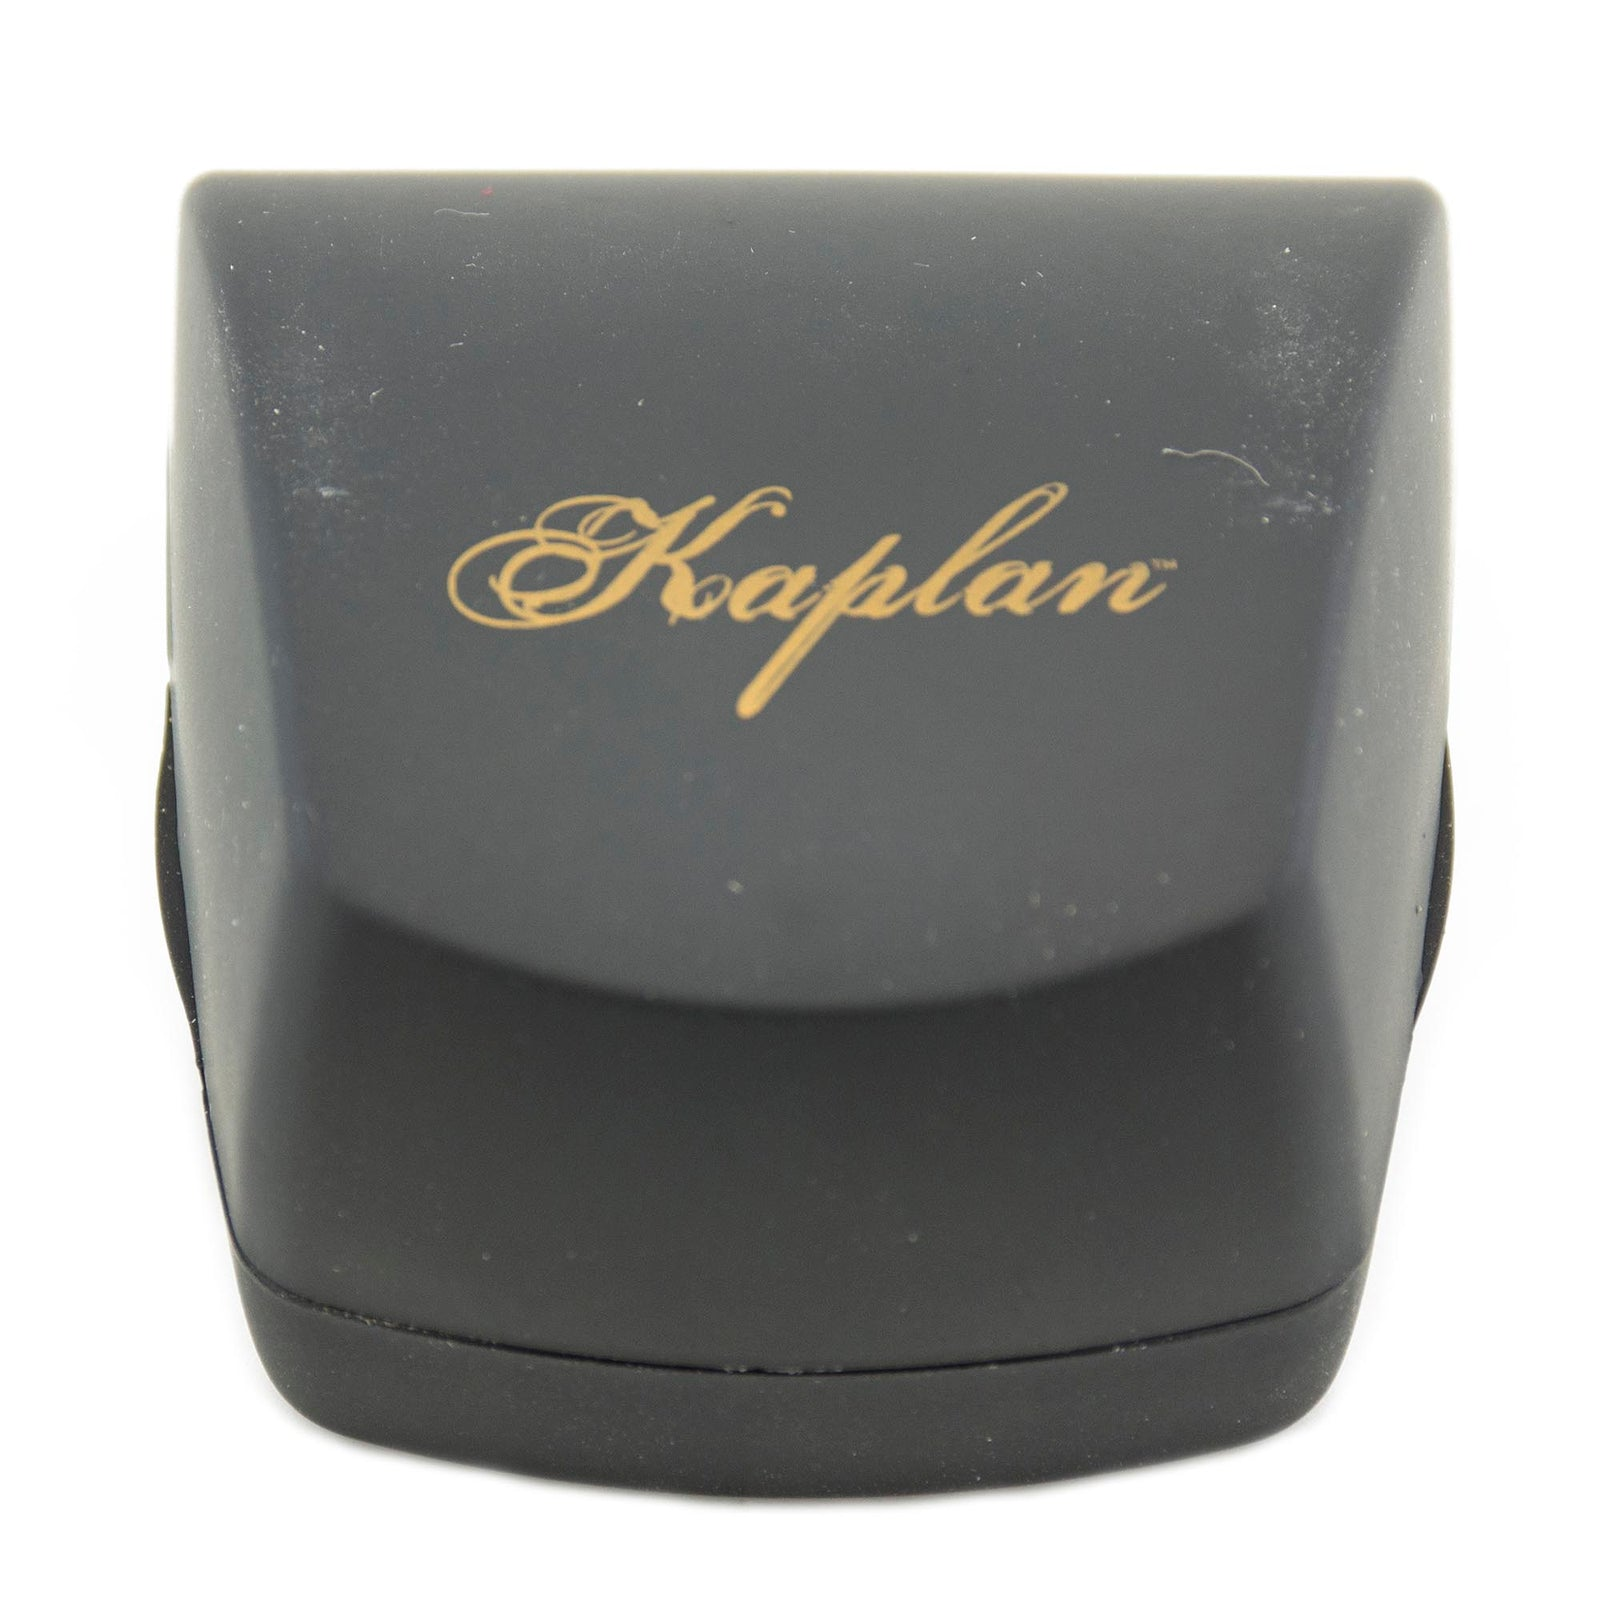 Daddario Kaplan Premium Dark Rosin With Case